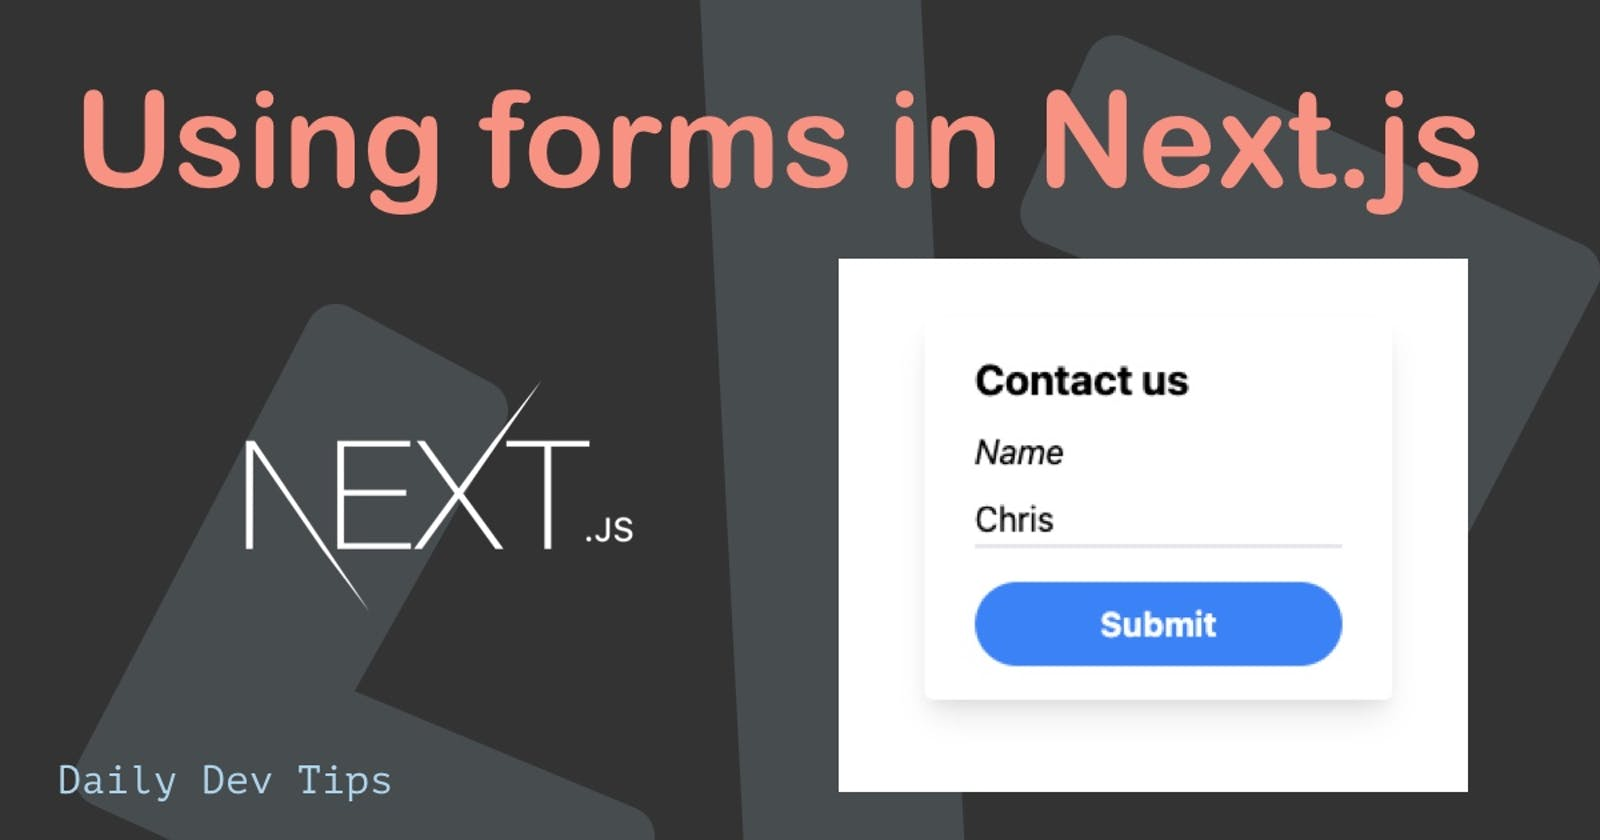 Using forms in Next.js